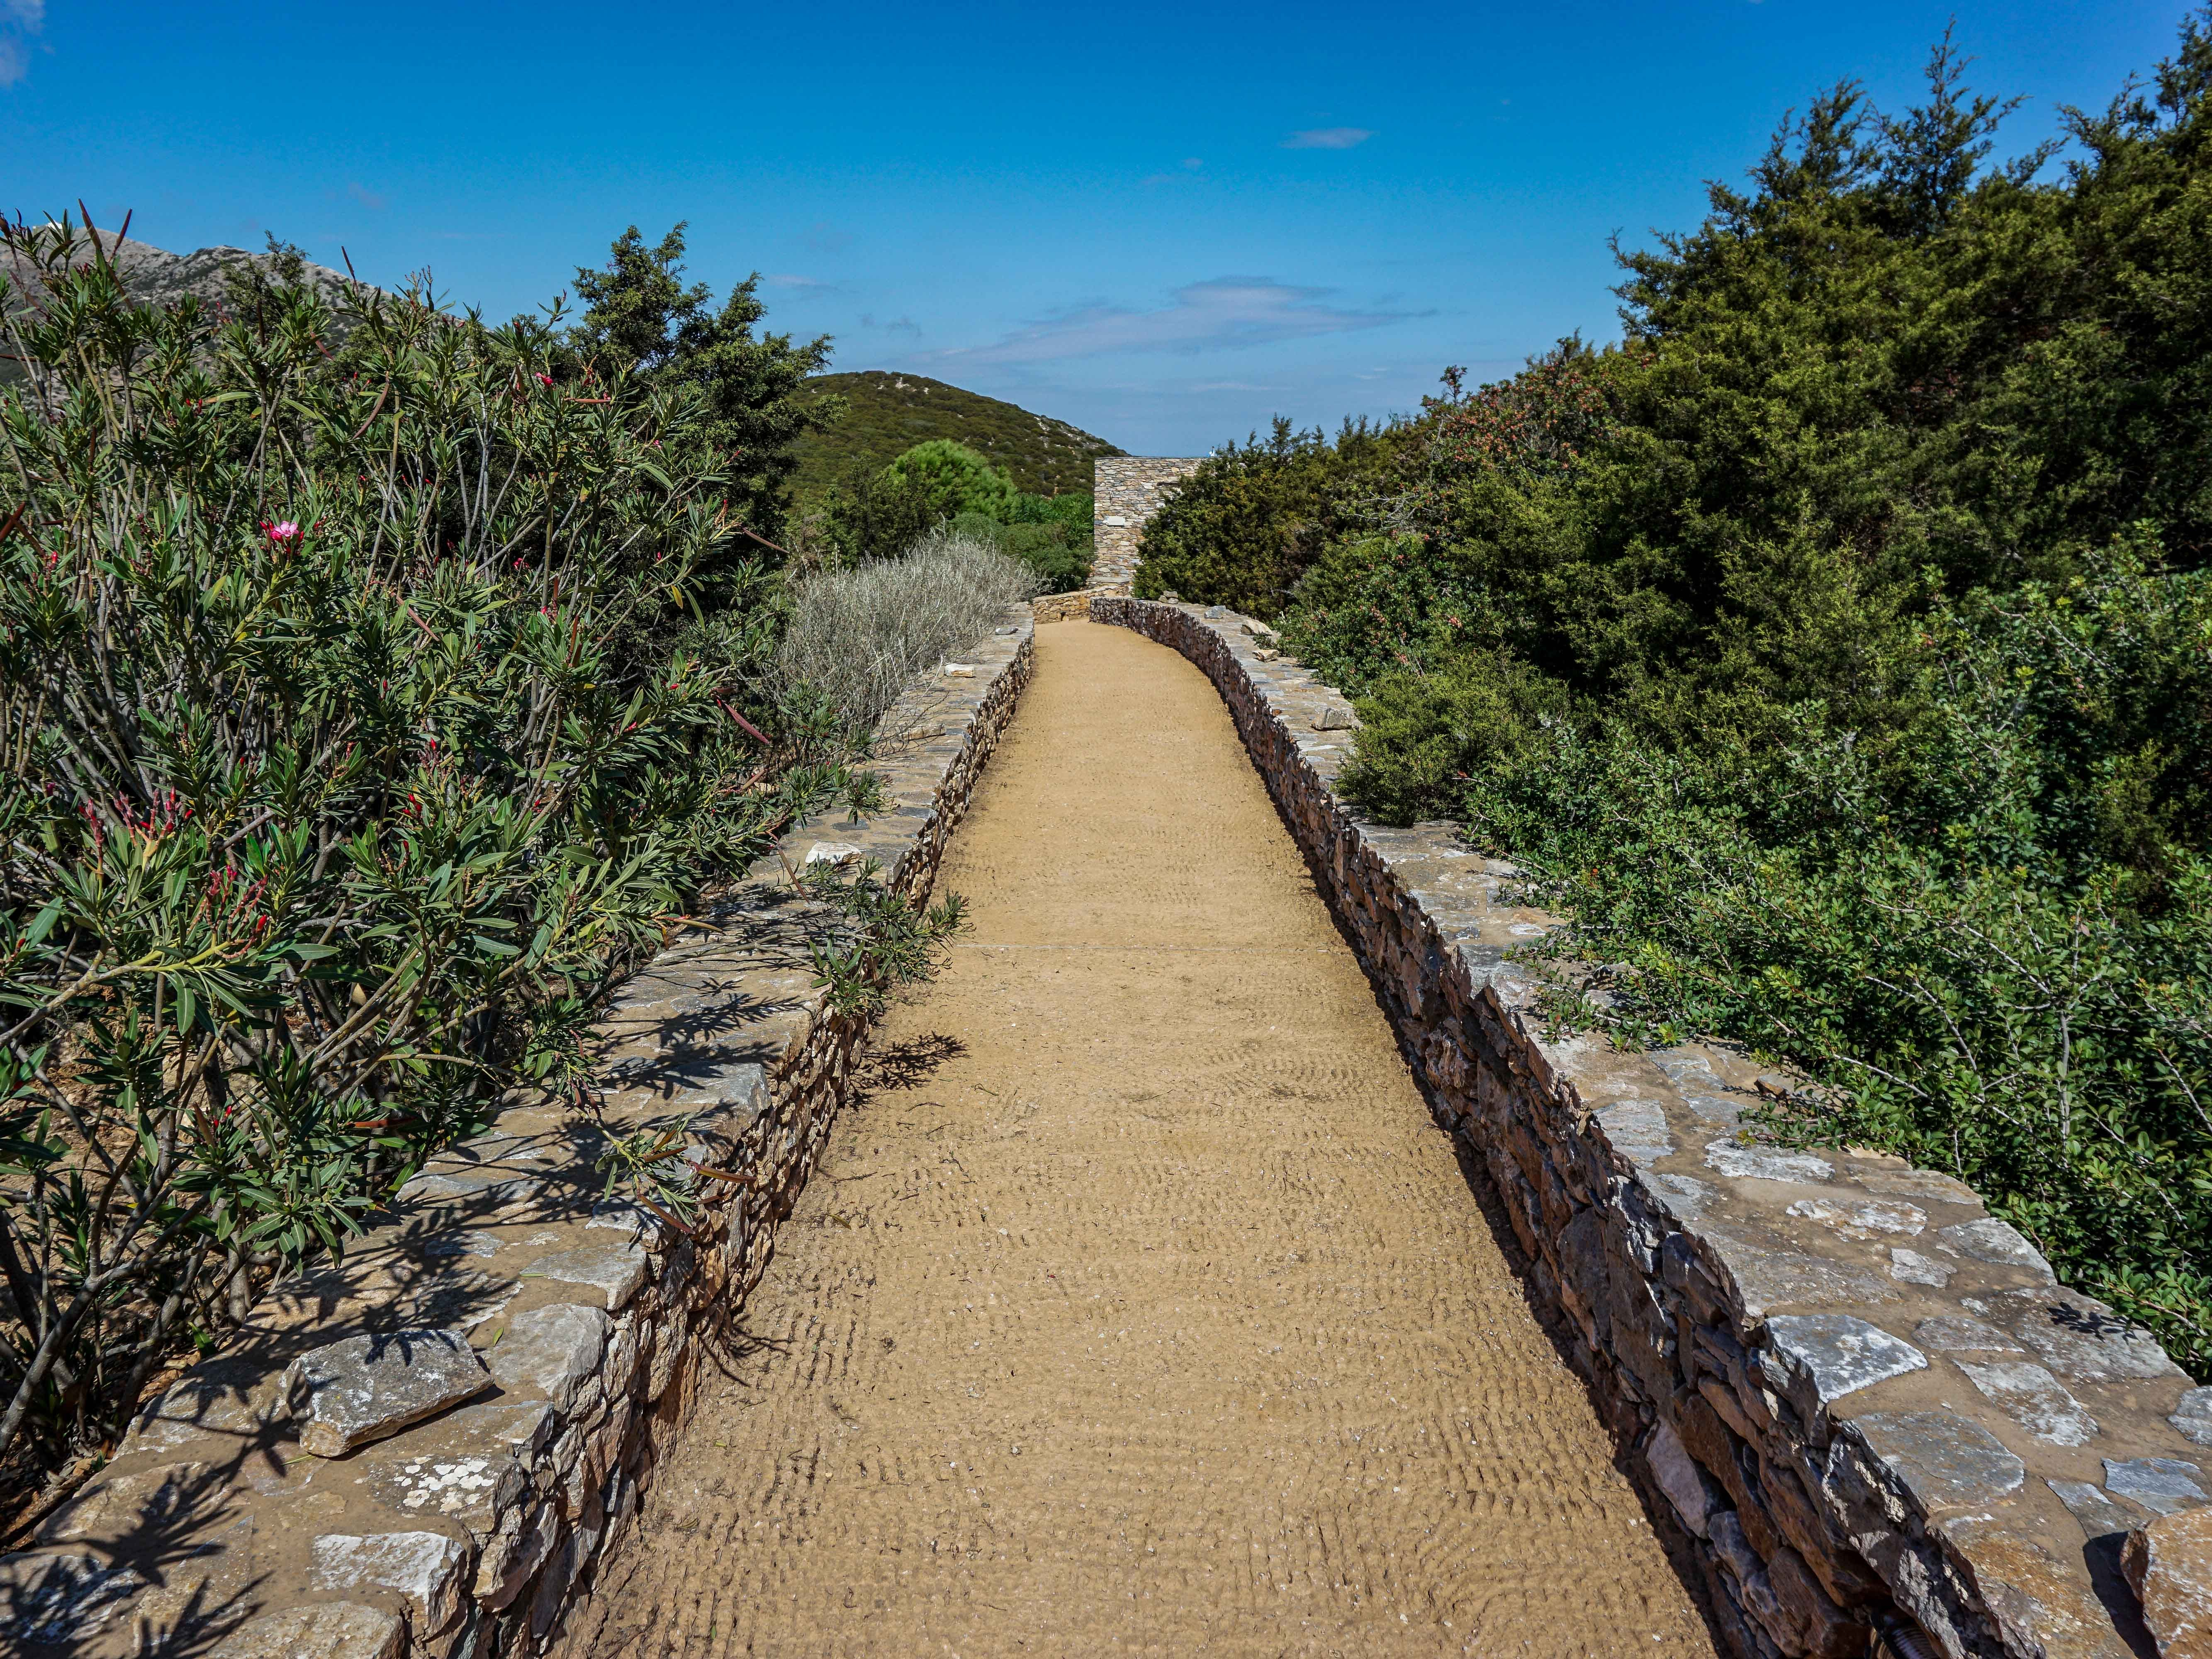 The well-designed trail leading to the church of Agios Andreas is part of the Sifnos Acropolis. It's perched high on a hill and was a hideaway from pirates who patrolled the Aegean Sea.